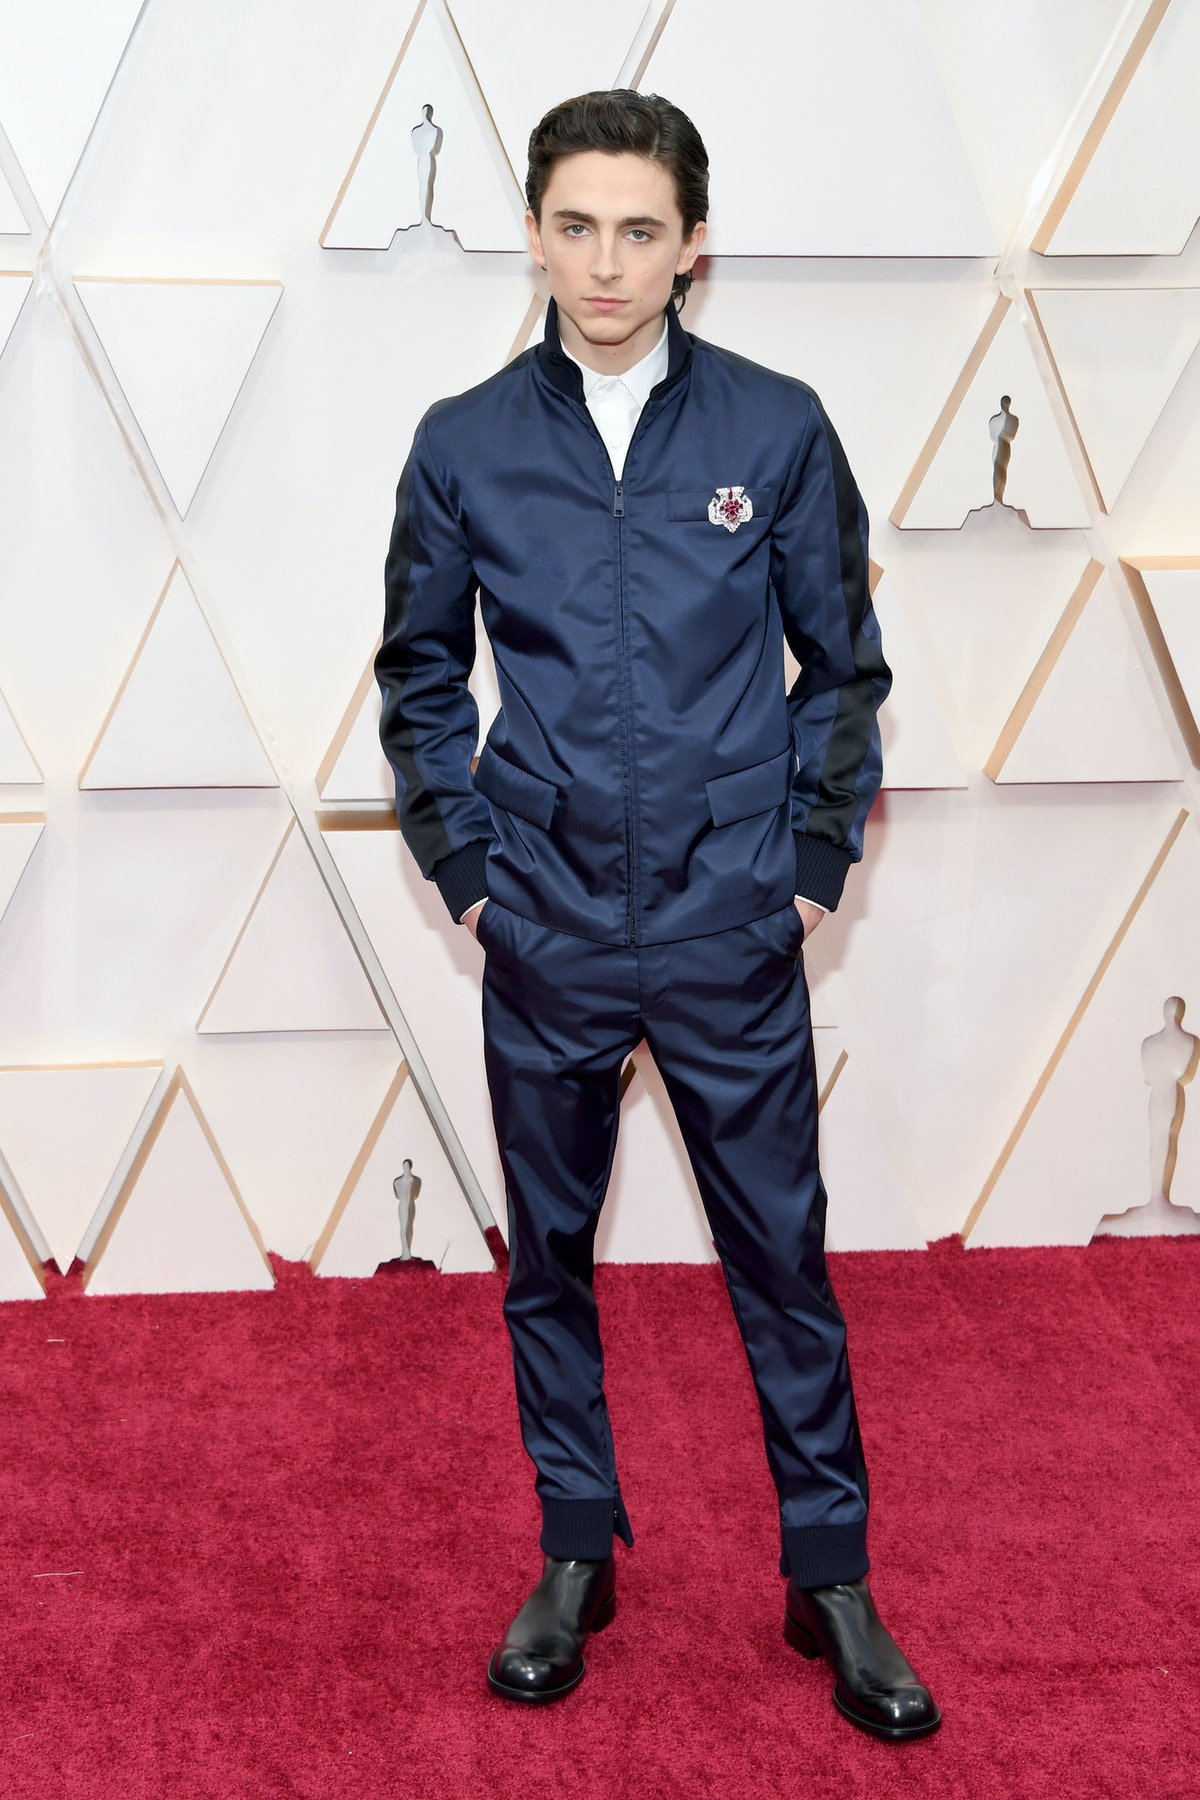 T. Chalamet in blue outfit